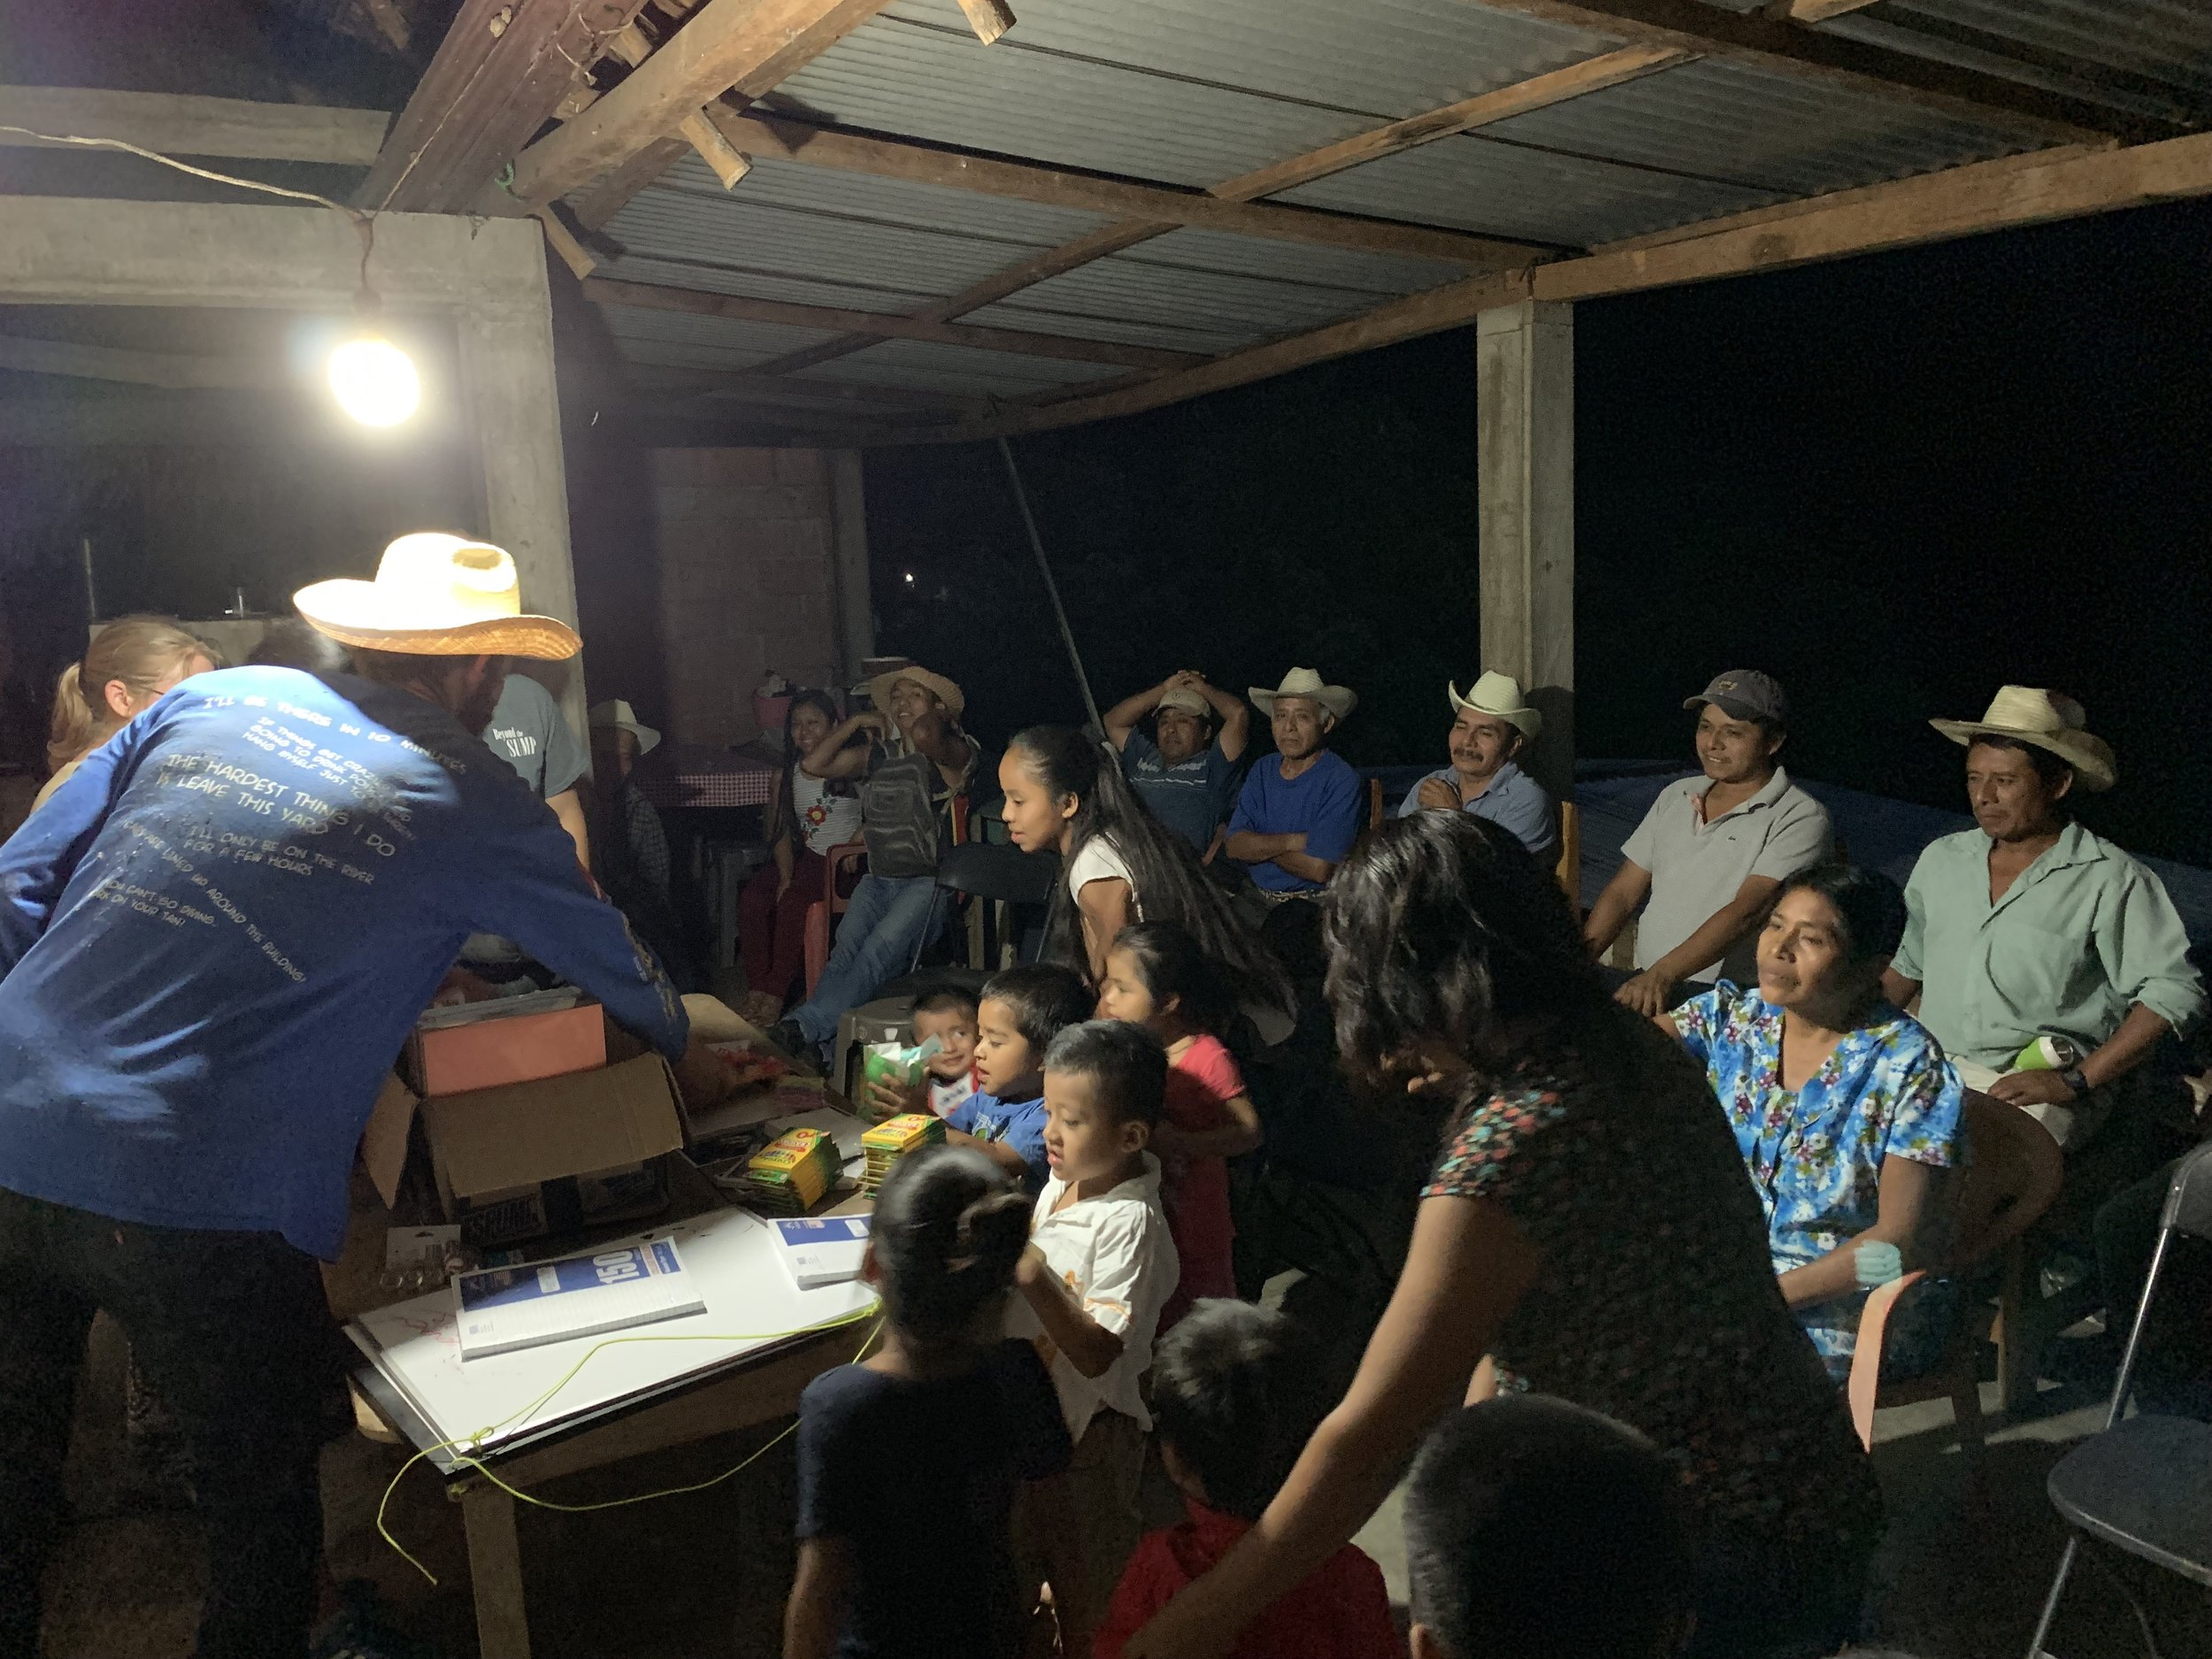 A presentation of our expedition to the locals of San Bartolomé Ayautla. Photo by Teddy Garlock.